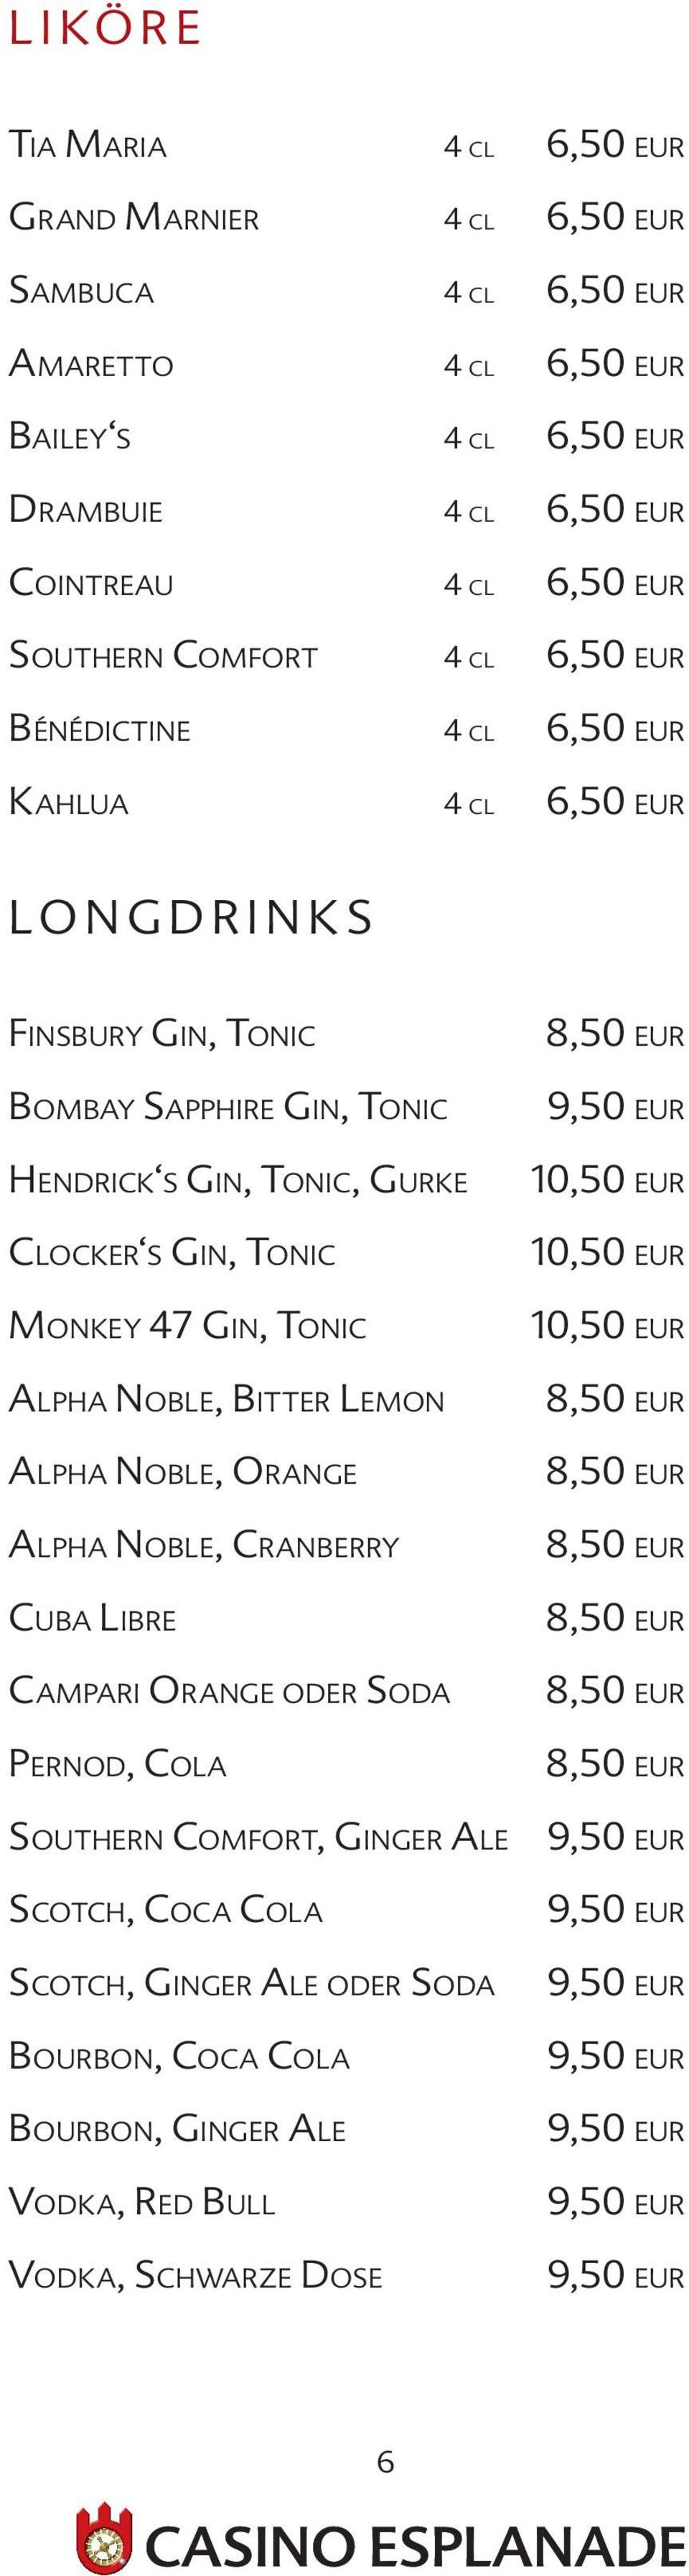 Gin, Tonic Monkey 47 Gin, Tonic Alpha Noble, Bitter Lemon Alpha Noble, Orange Alpha Noble, Cranberry Cuba Libre Campari Orange oder Soda Pernod, Cola Southern Comfort, Ginger Ale